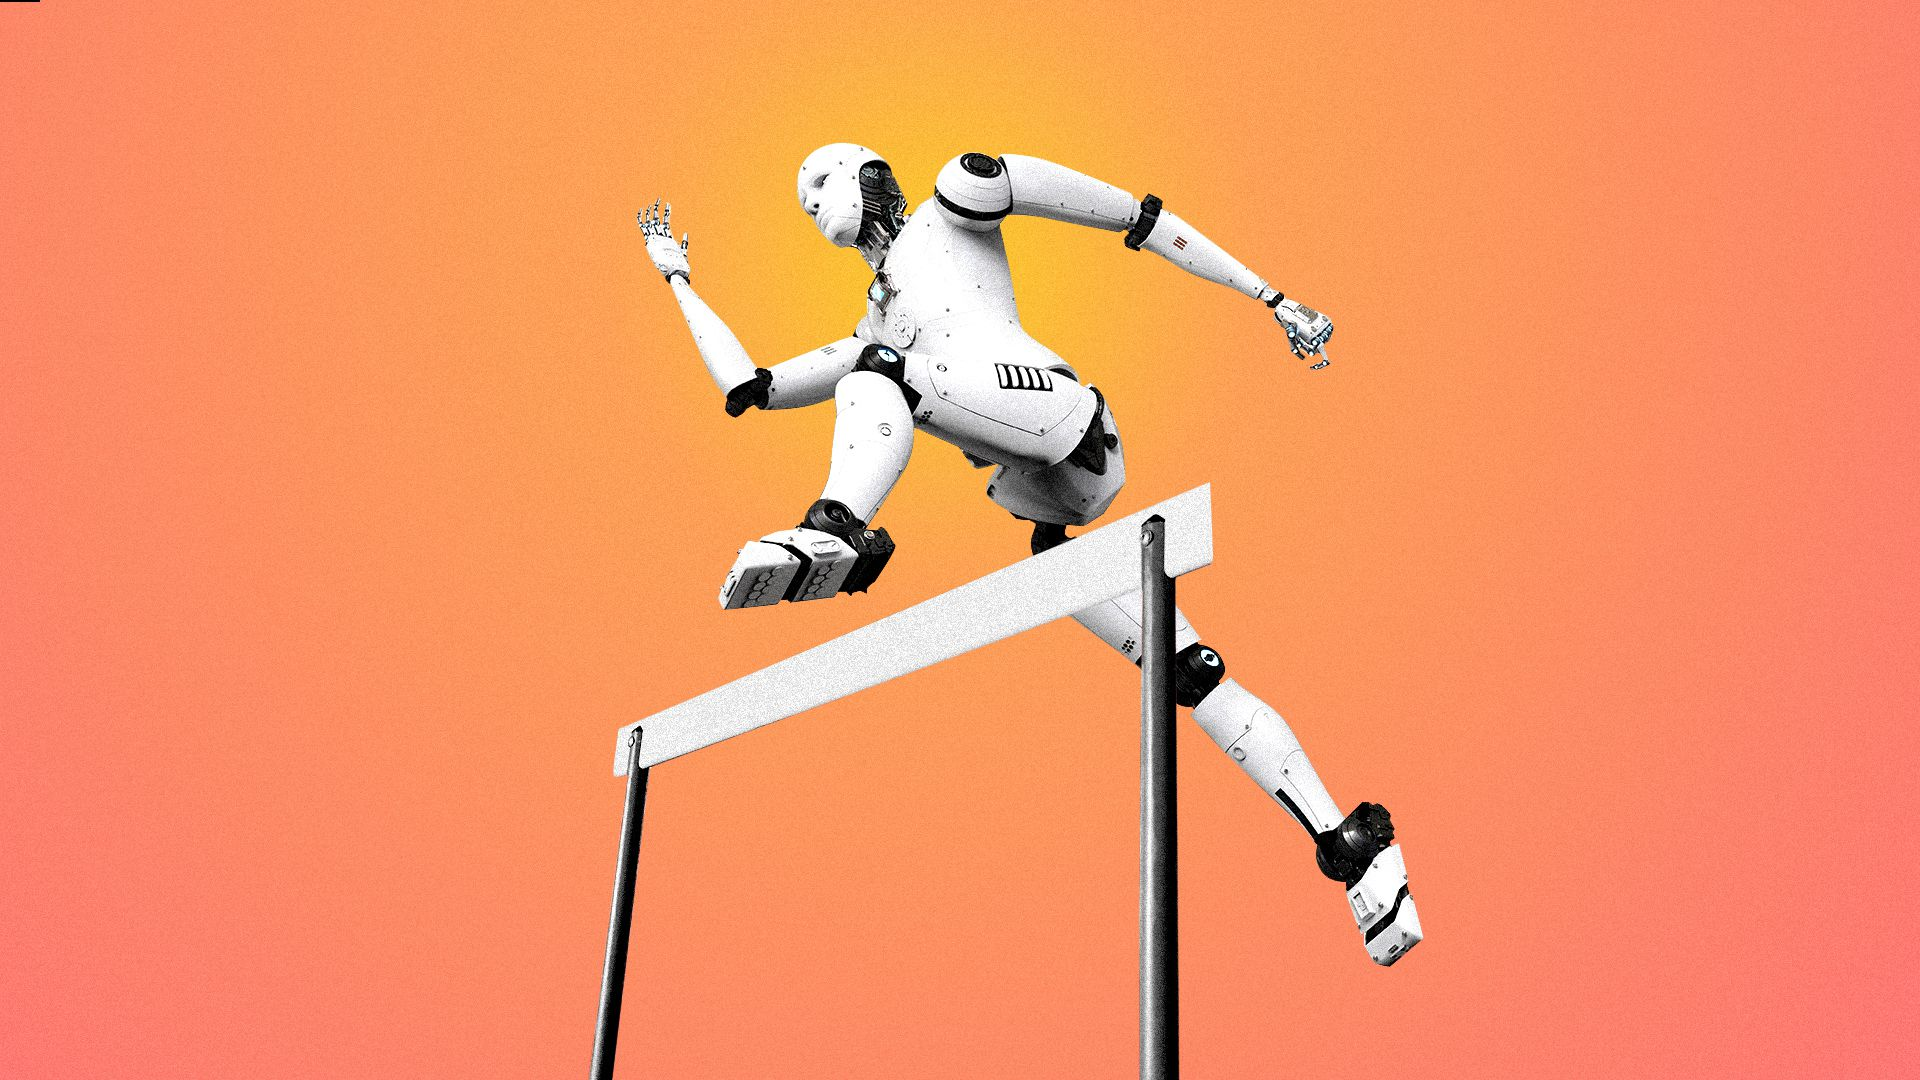 Illustration of a robot jumping over a hurdle